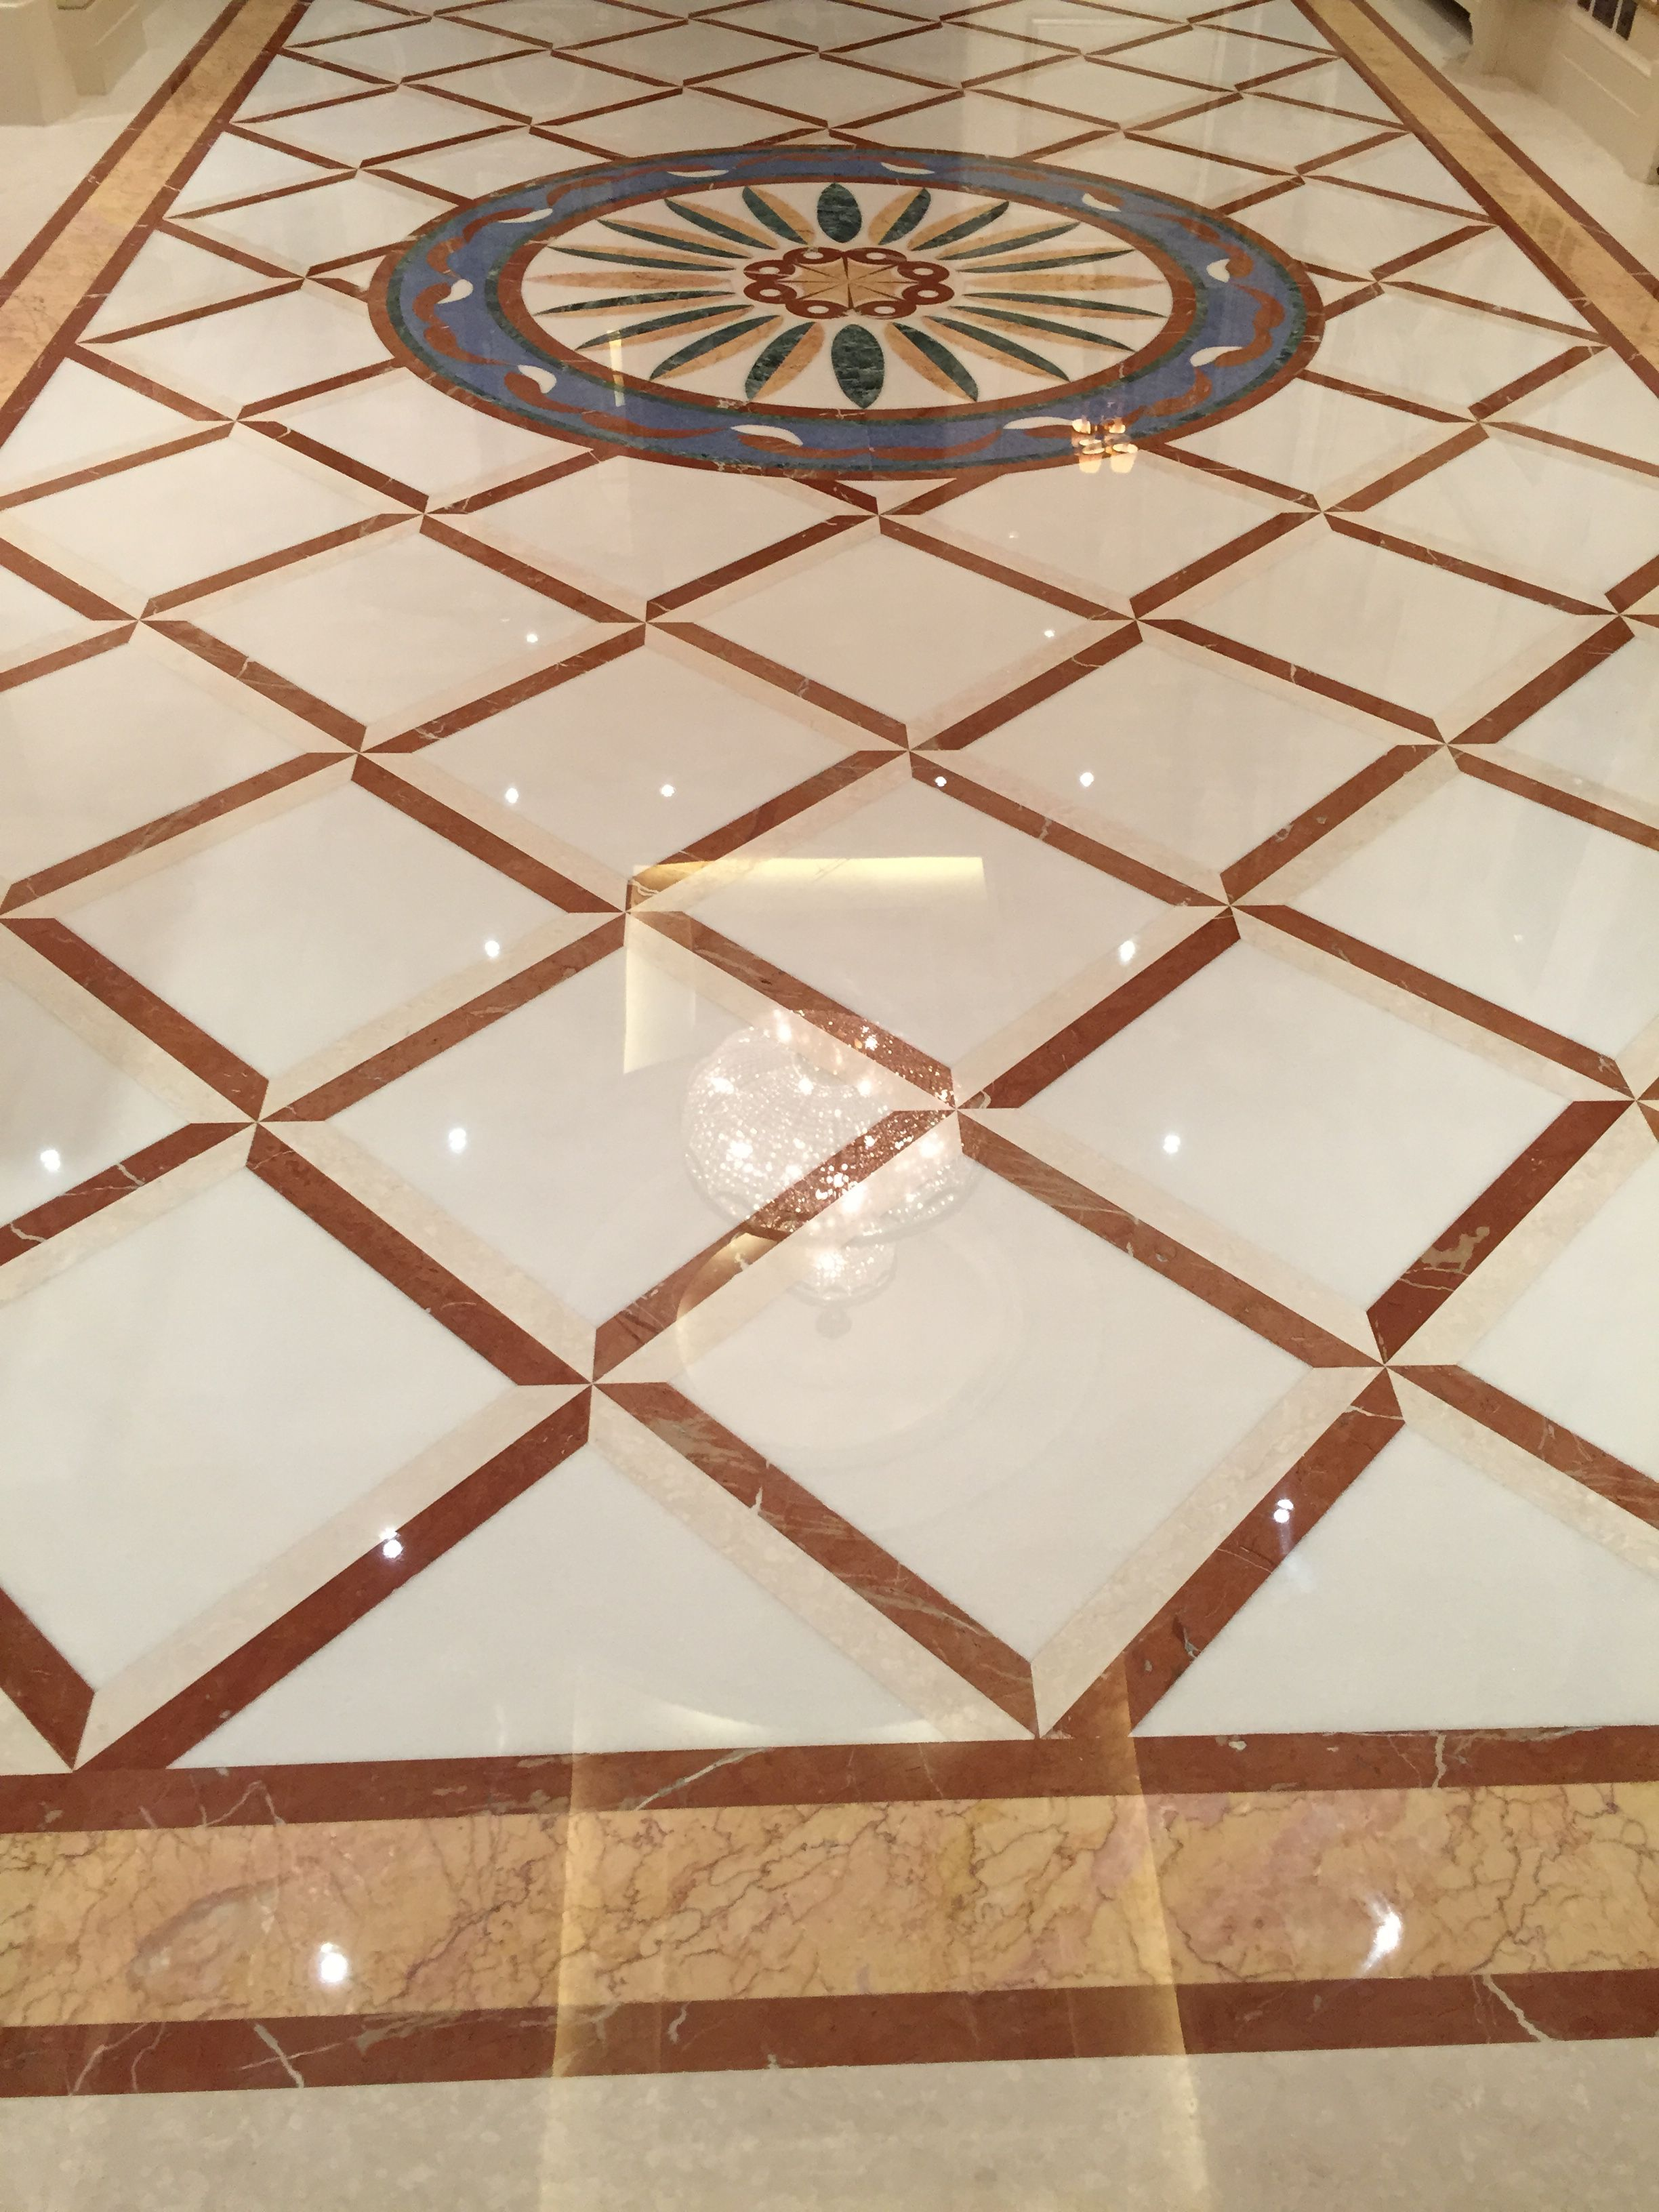 Diamond Polishing Marble Floor Belgrave London Shopping Mall